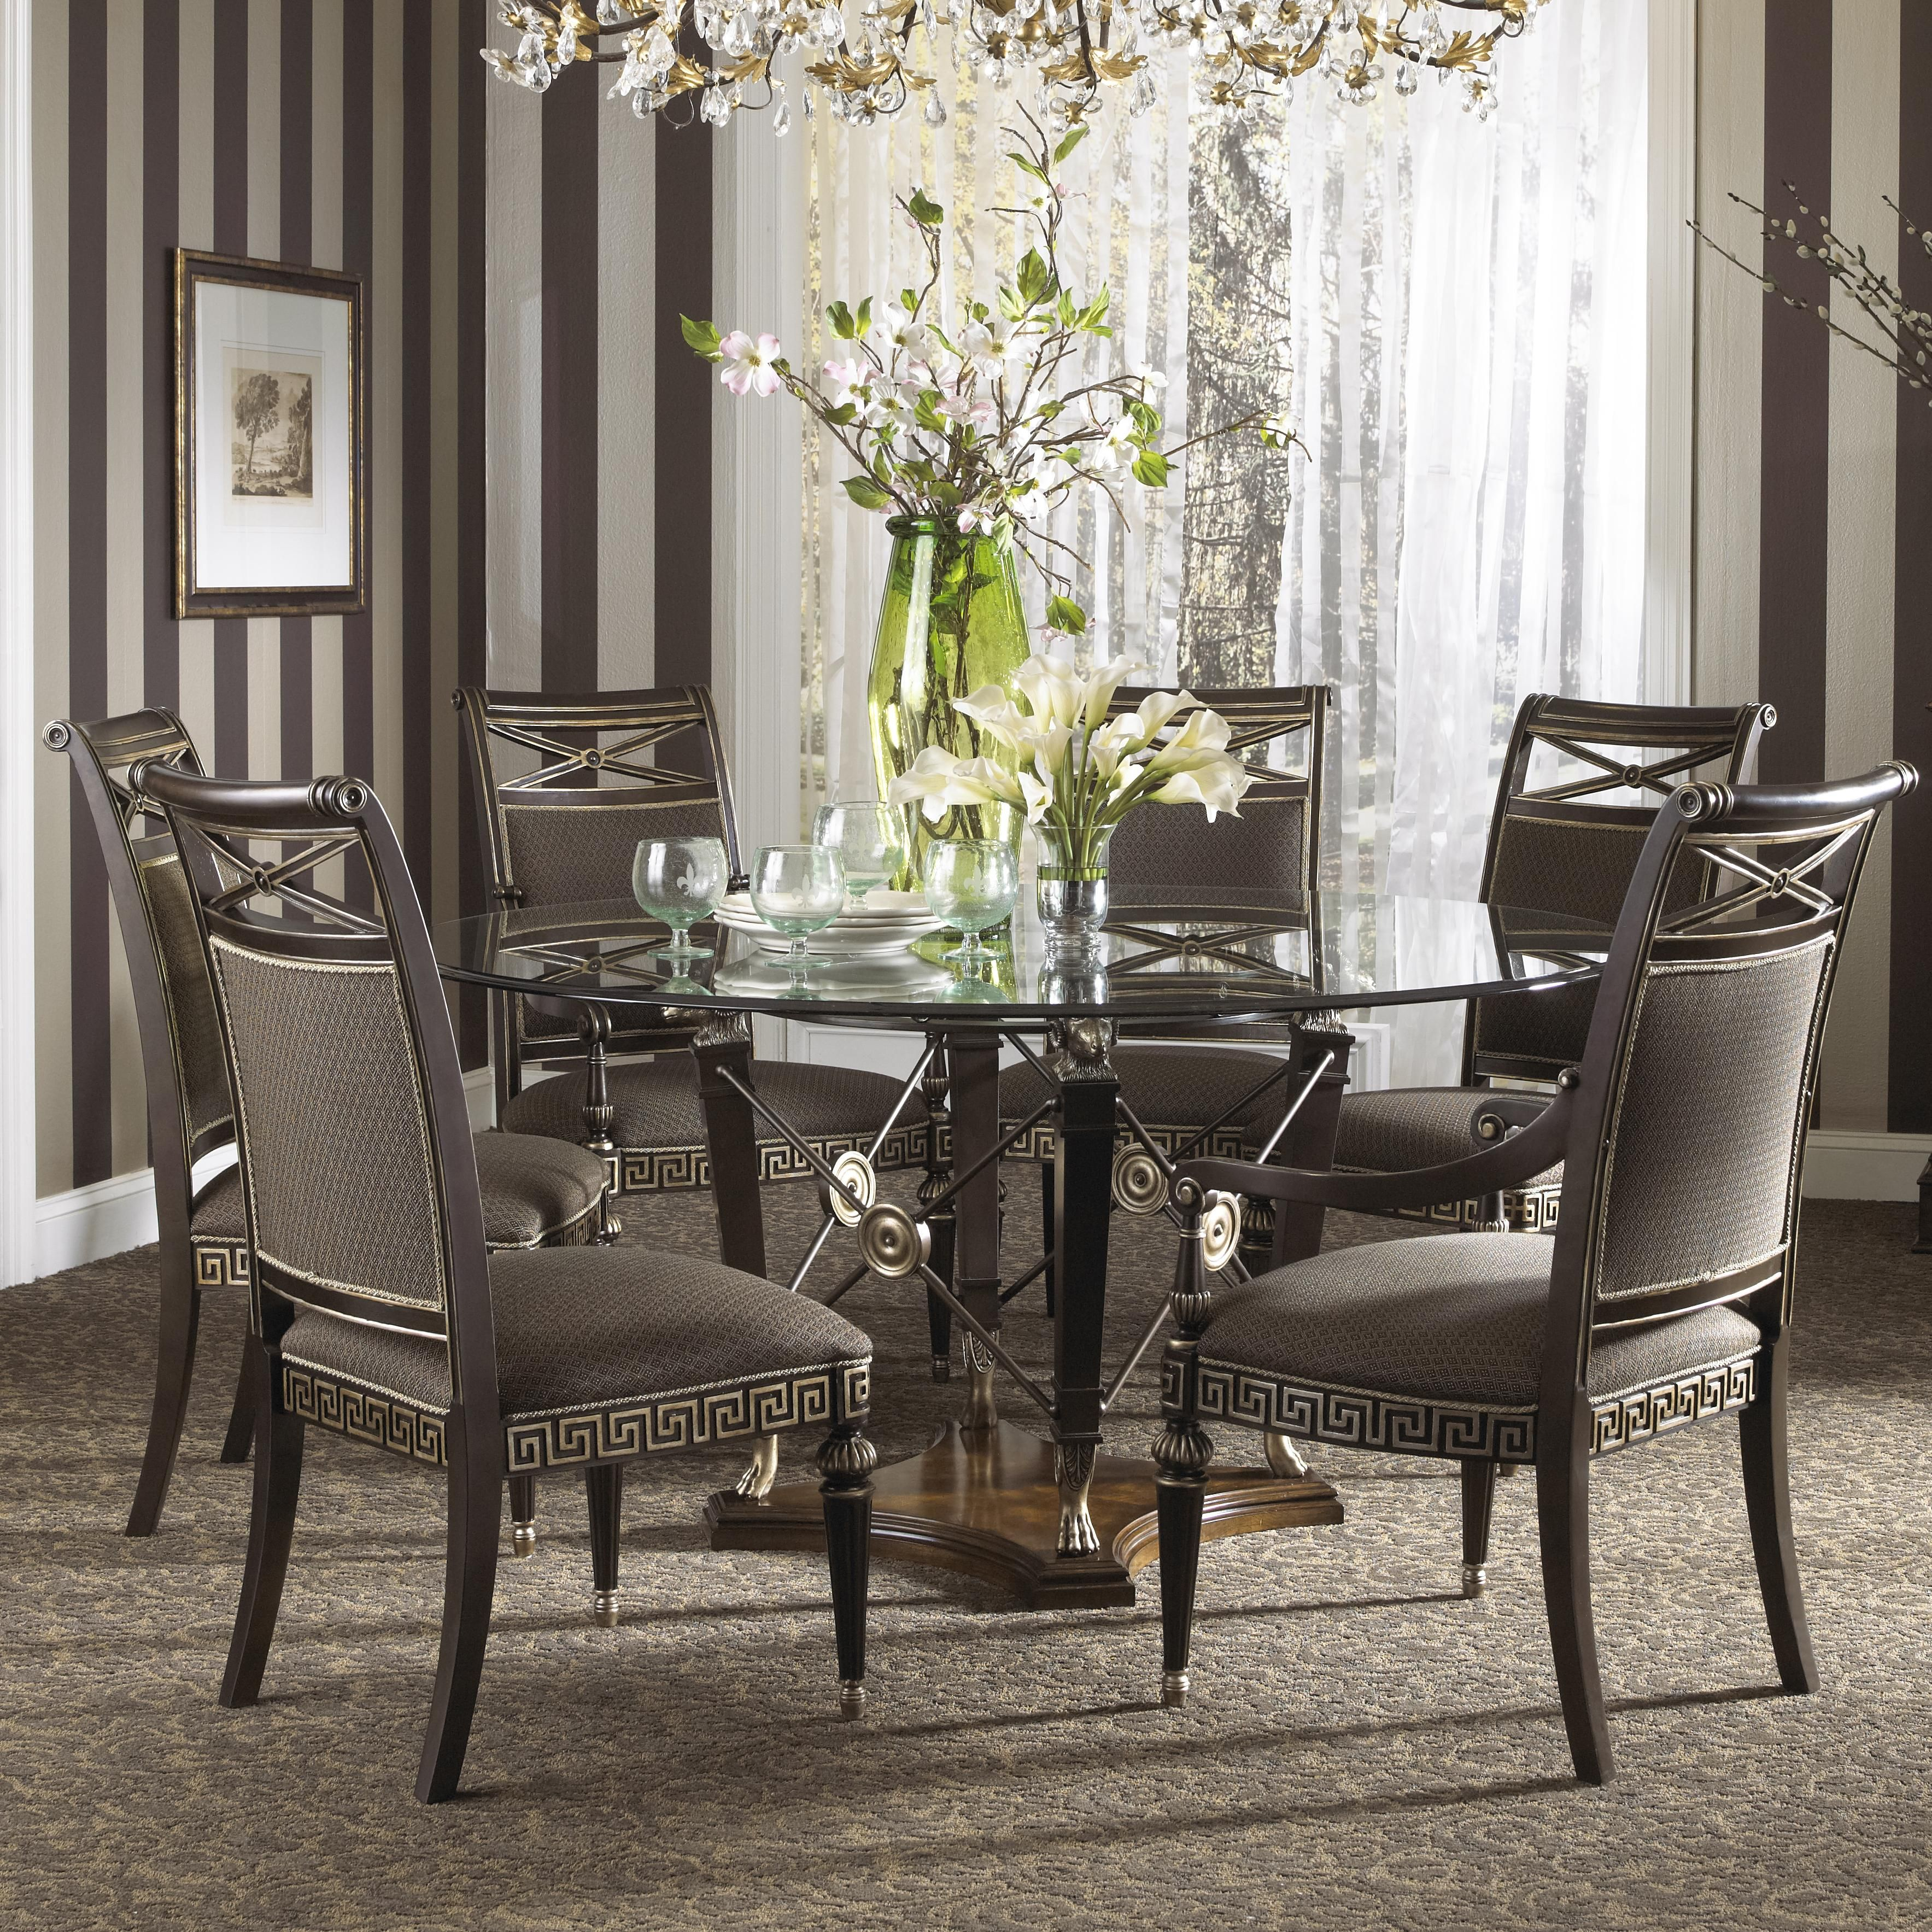 Dining room tables and chairs for 6 - 17 Best Images About Around The Table On Pinterest Casual Dining Rooms Wolves And Nail Head